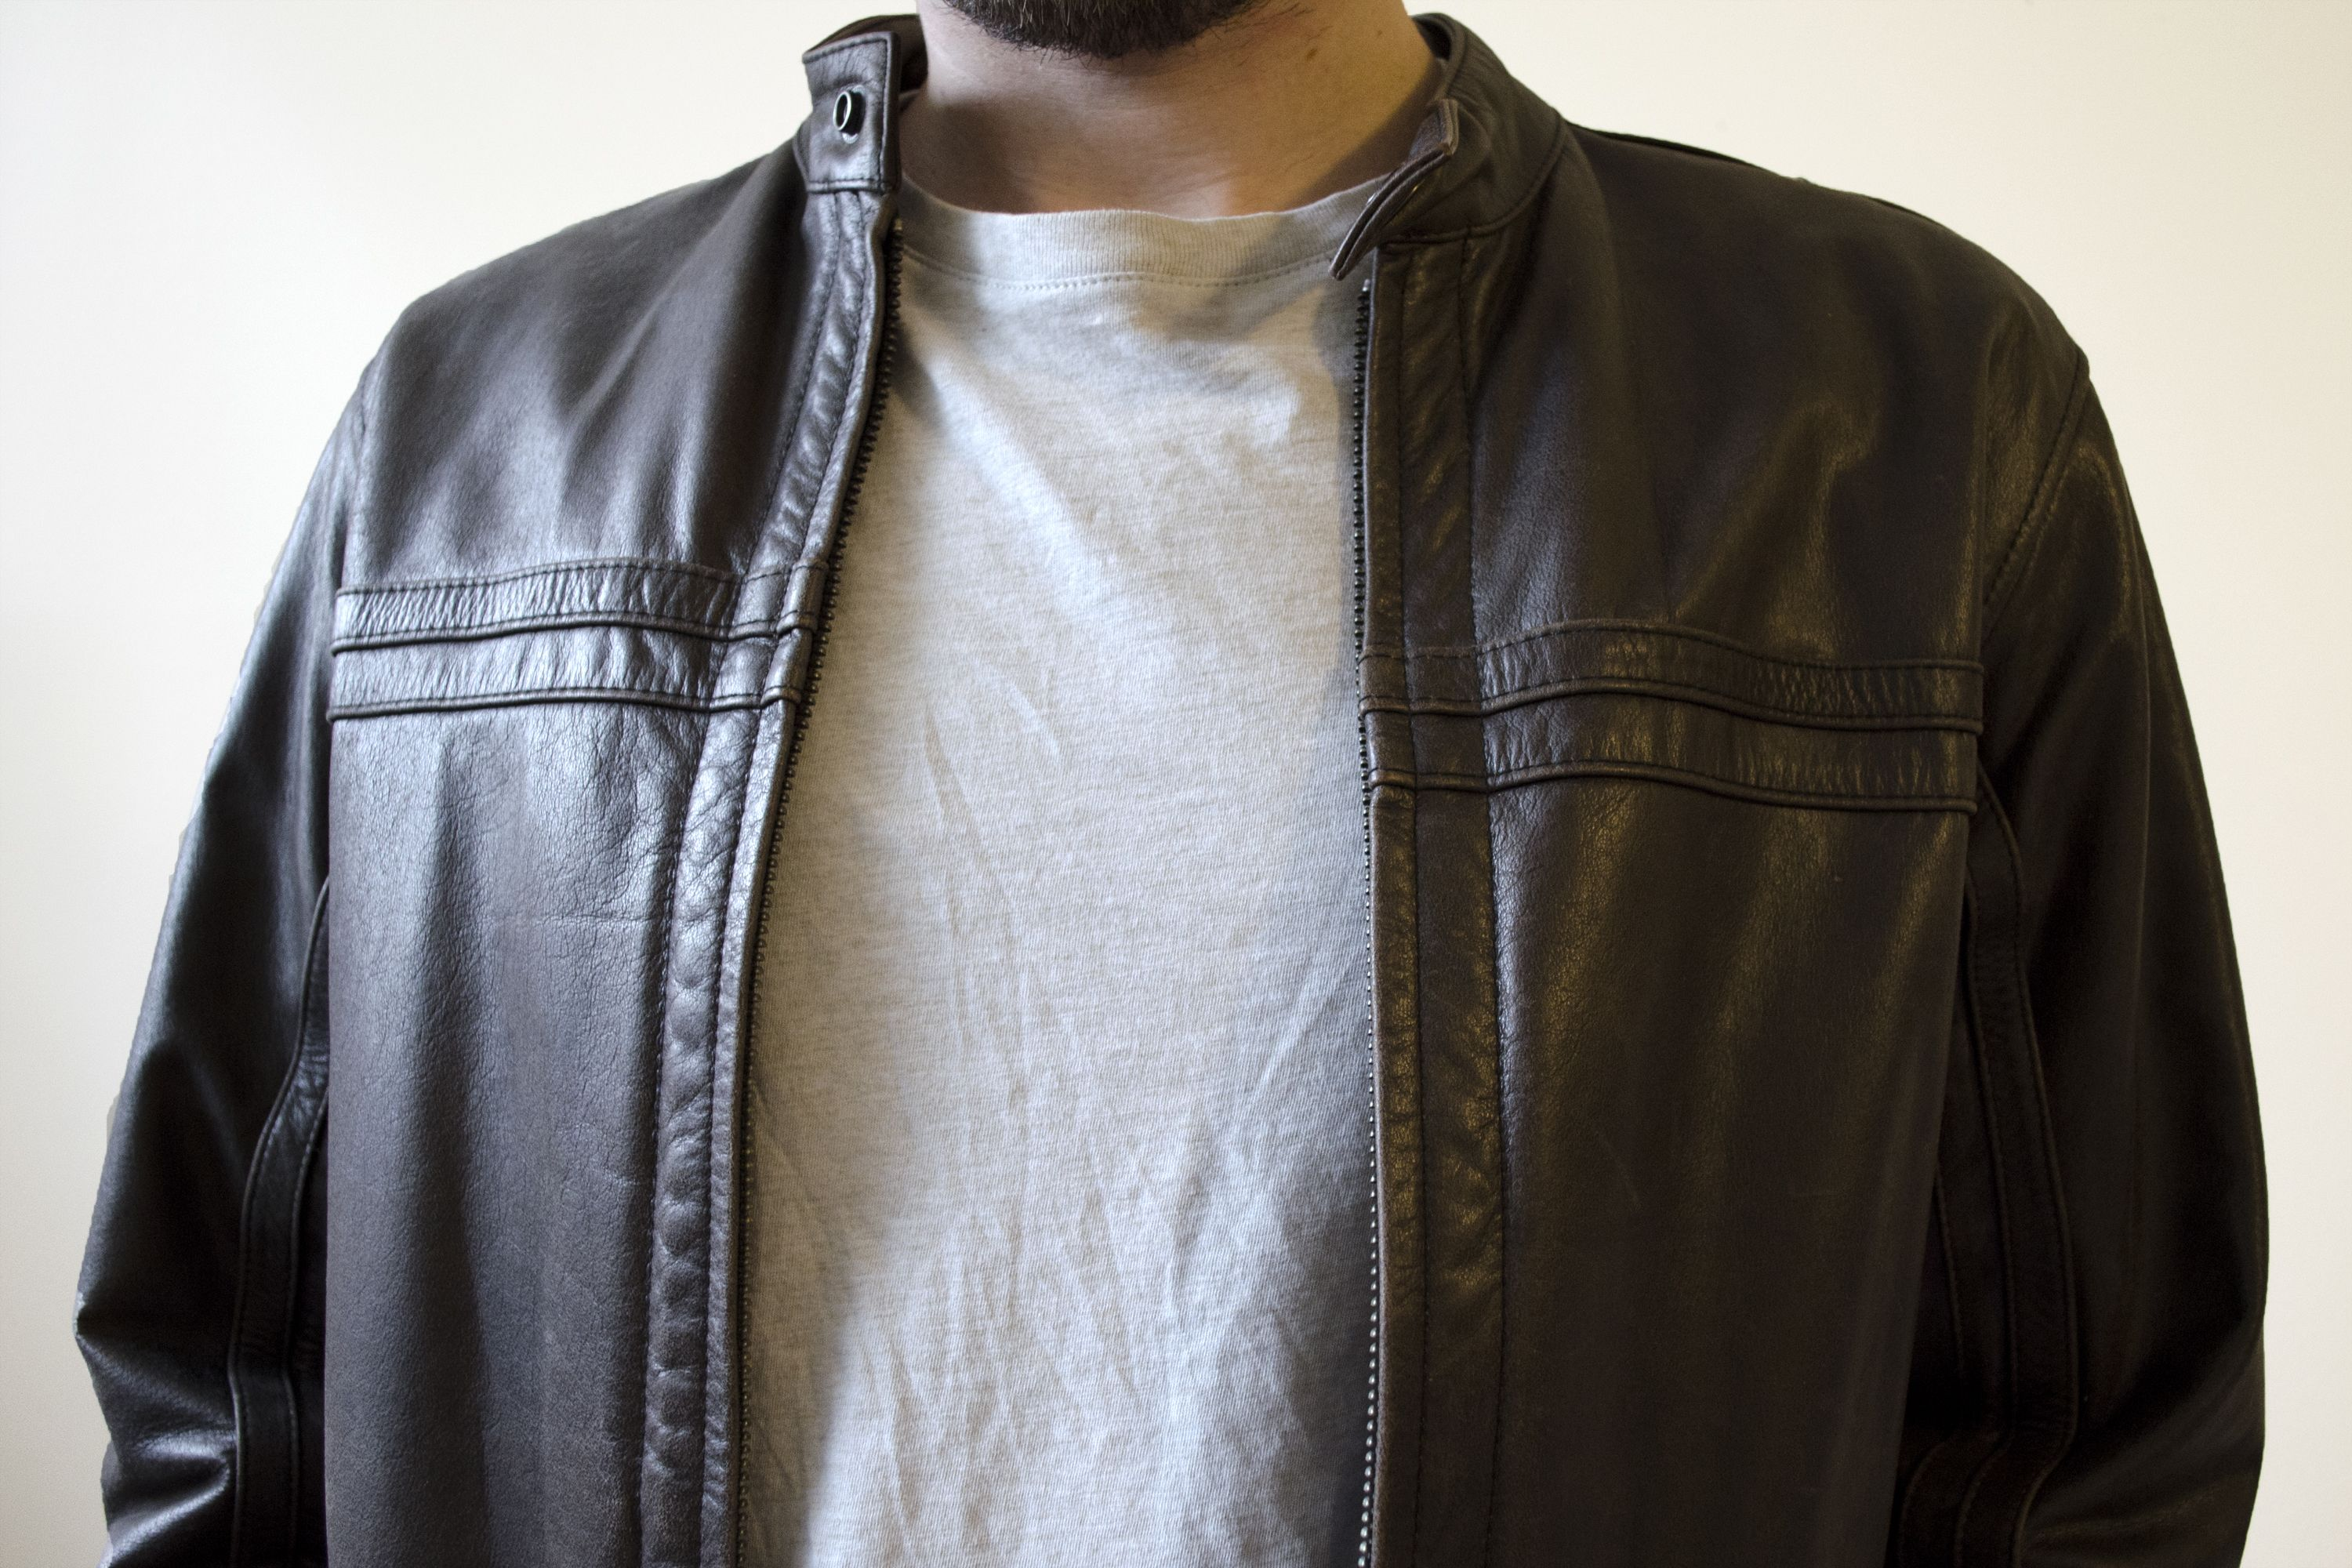 Leather jacket cleaner and conditioner - How To Make Your Own Leather Jacket Softener Conditioner